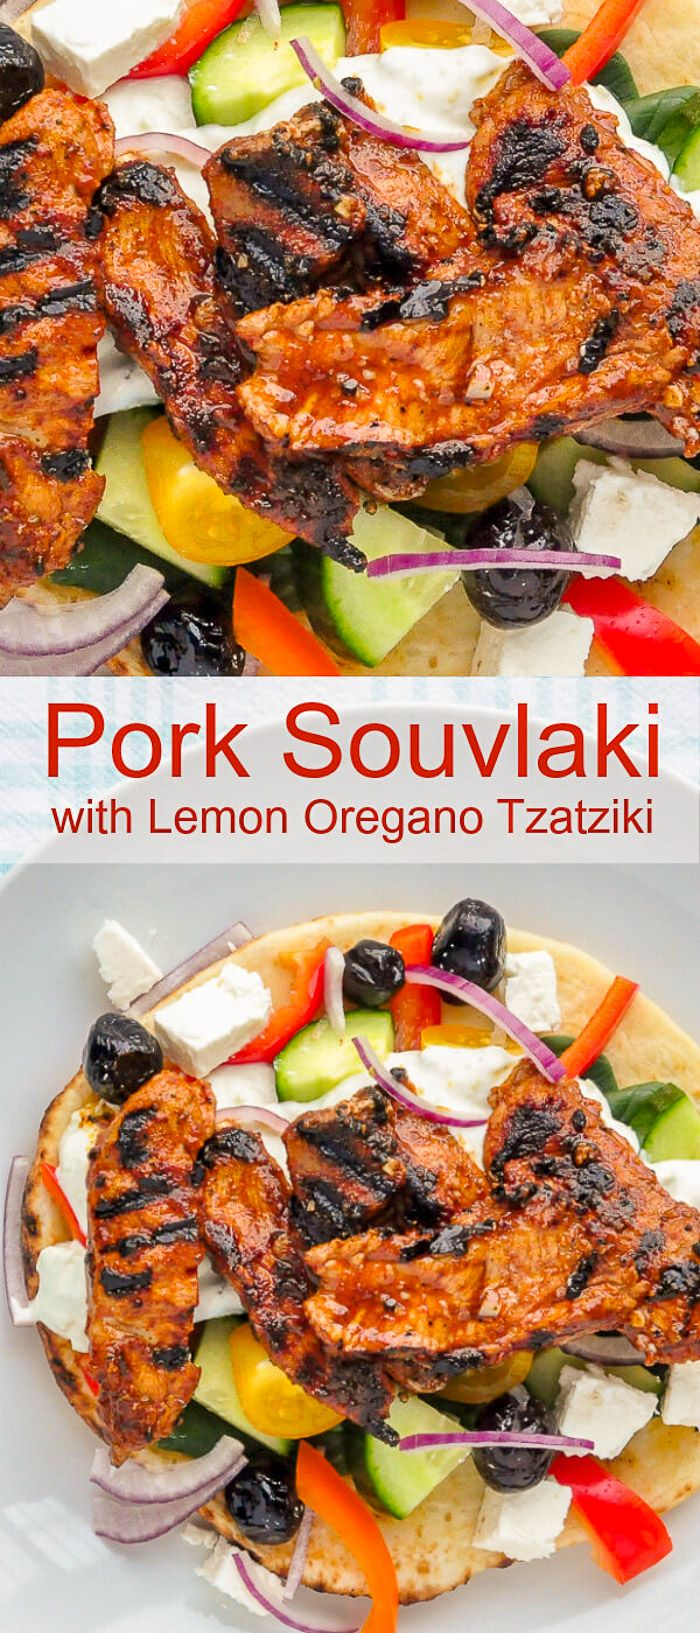 Pork Souvlaki with Lemon Oregano Tzatziki. With marinated pork strips that cook in only about 2 minutes, this is a delicious super-fastway to enjoy a souvlaki dinner at any time of the year.